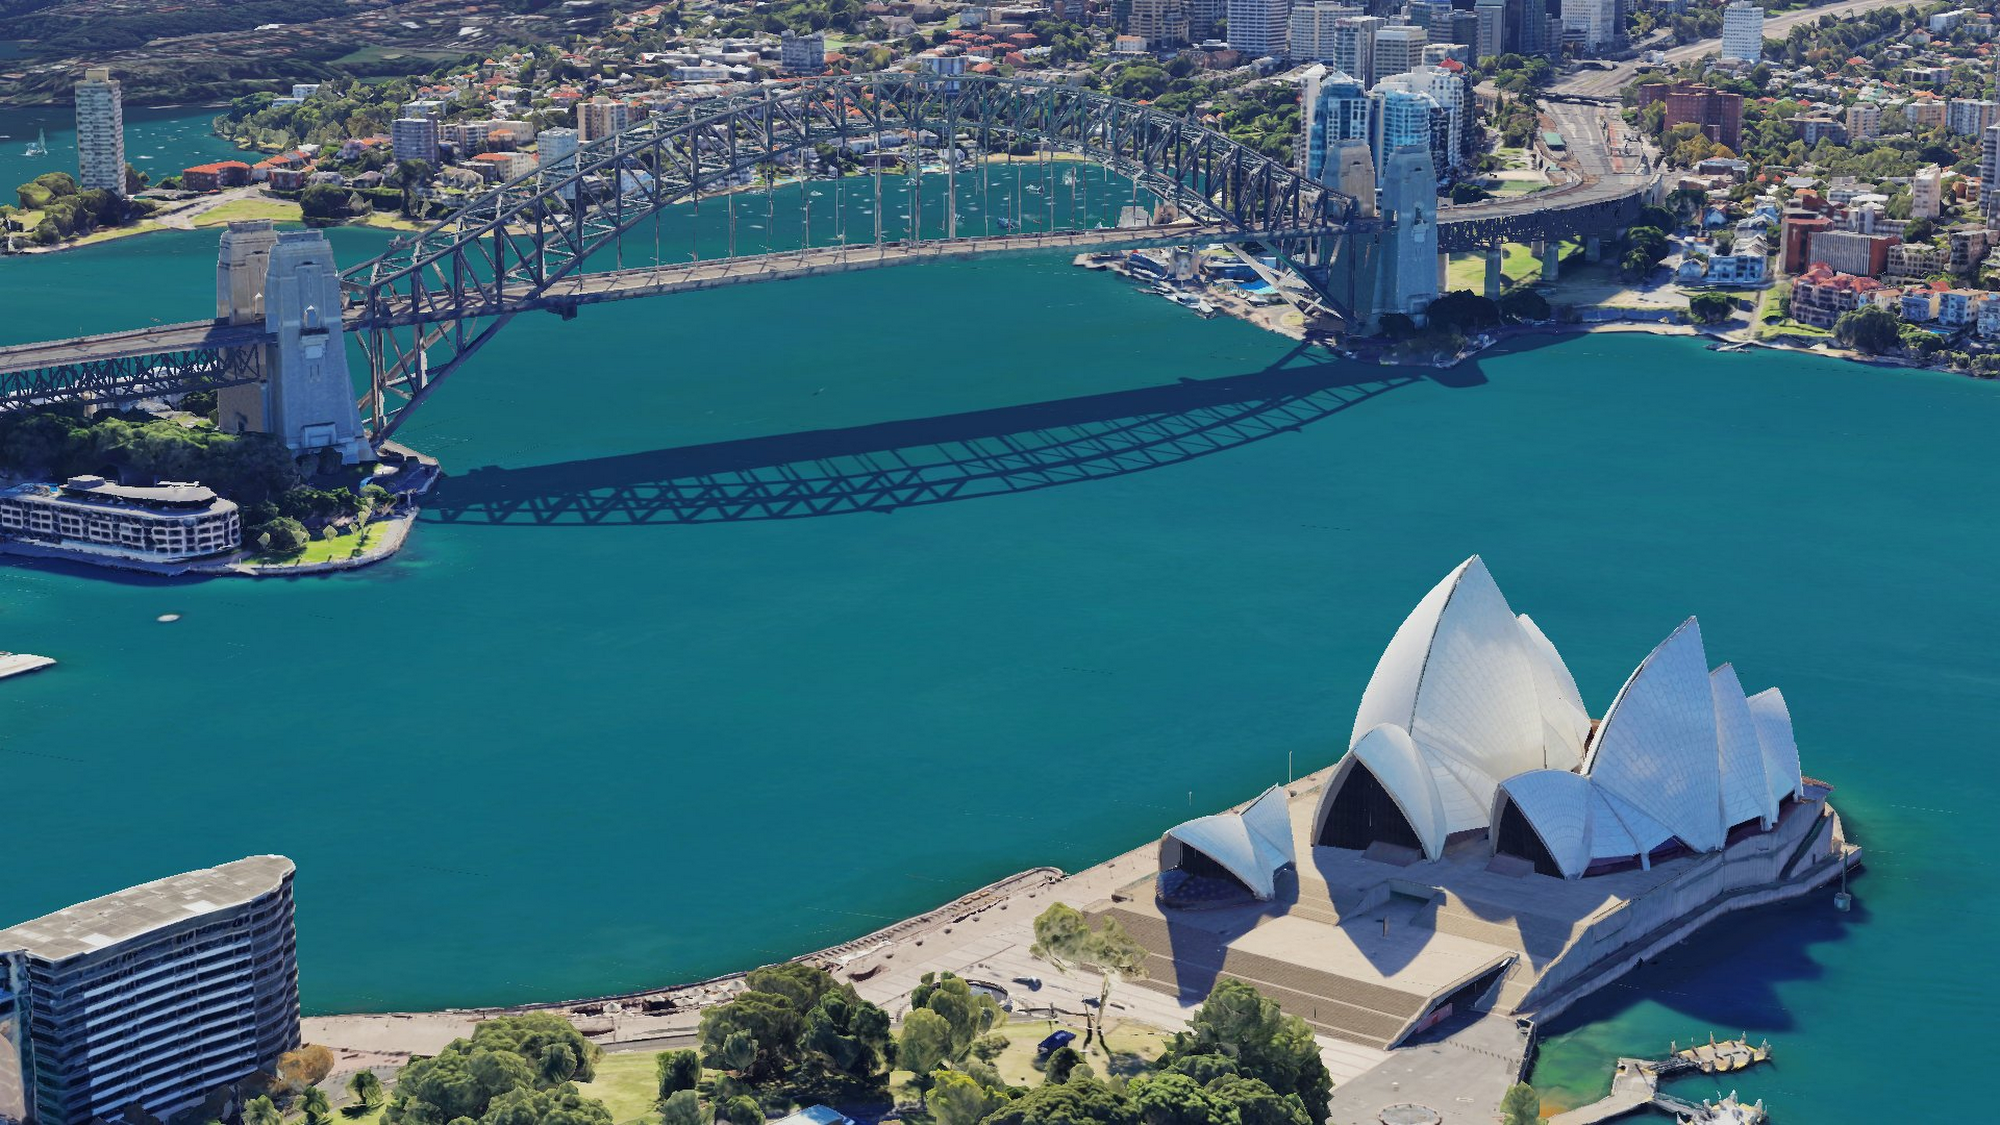 Down under, over and all around: Sydney in 3D on Google Earth